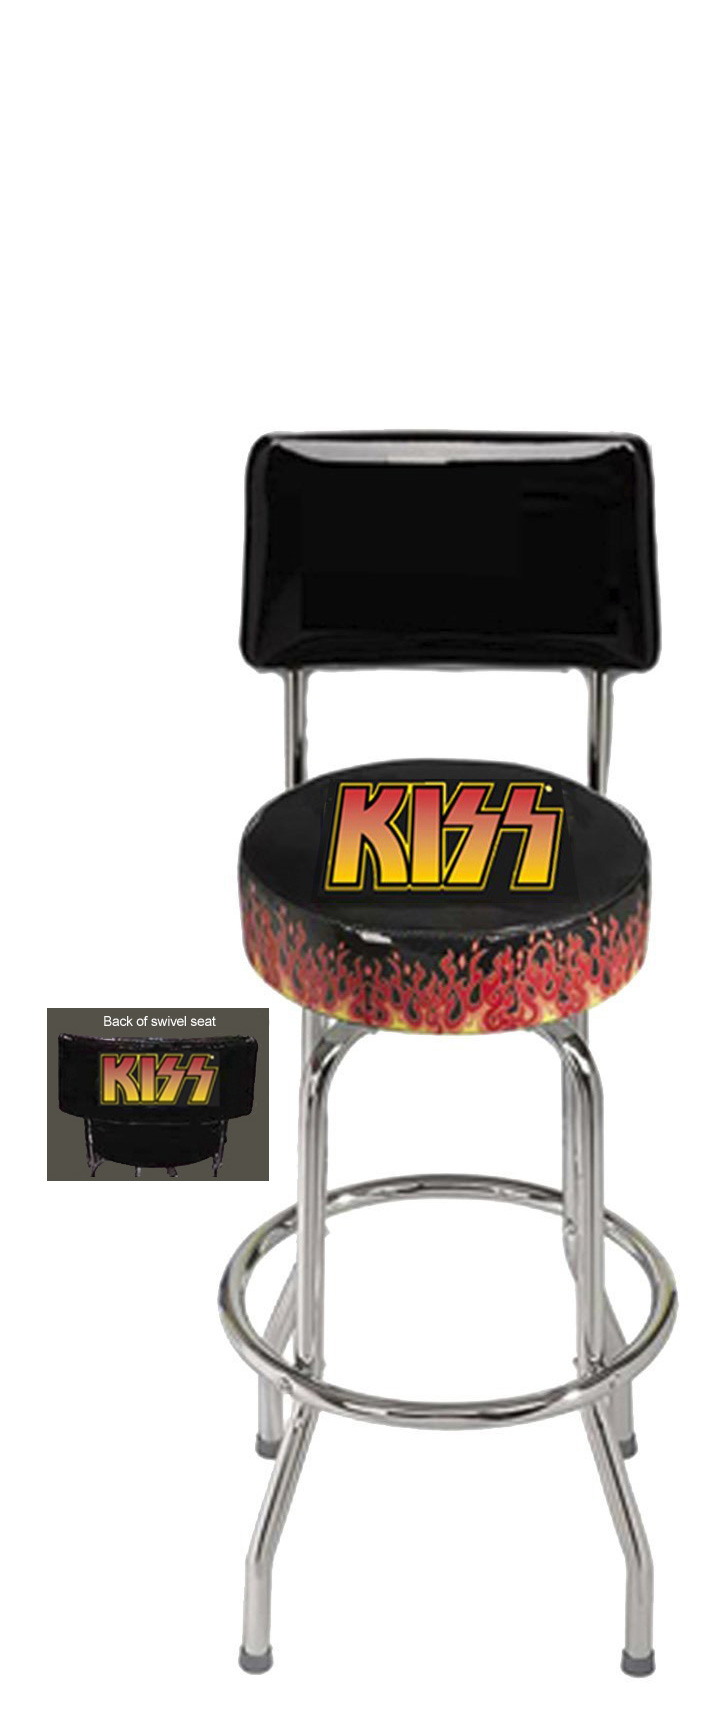 KISS Regal flame logo bar stool with back